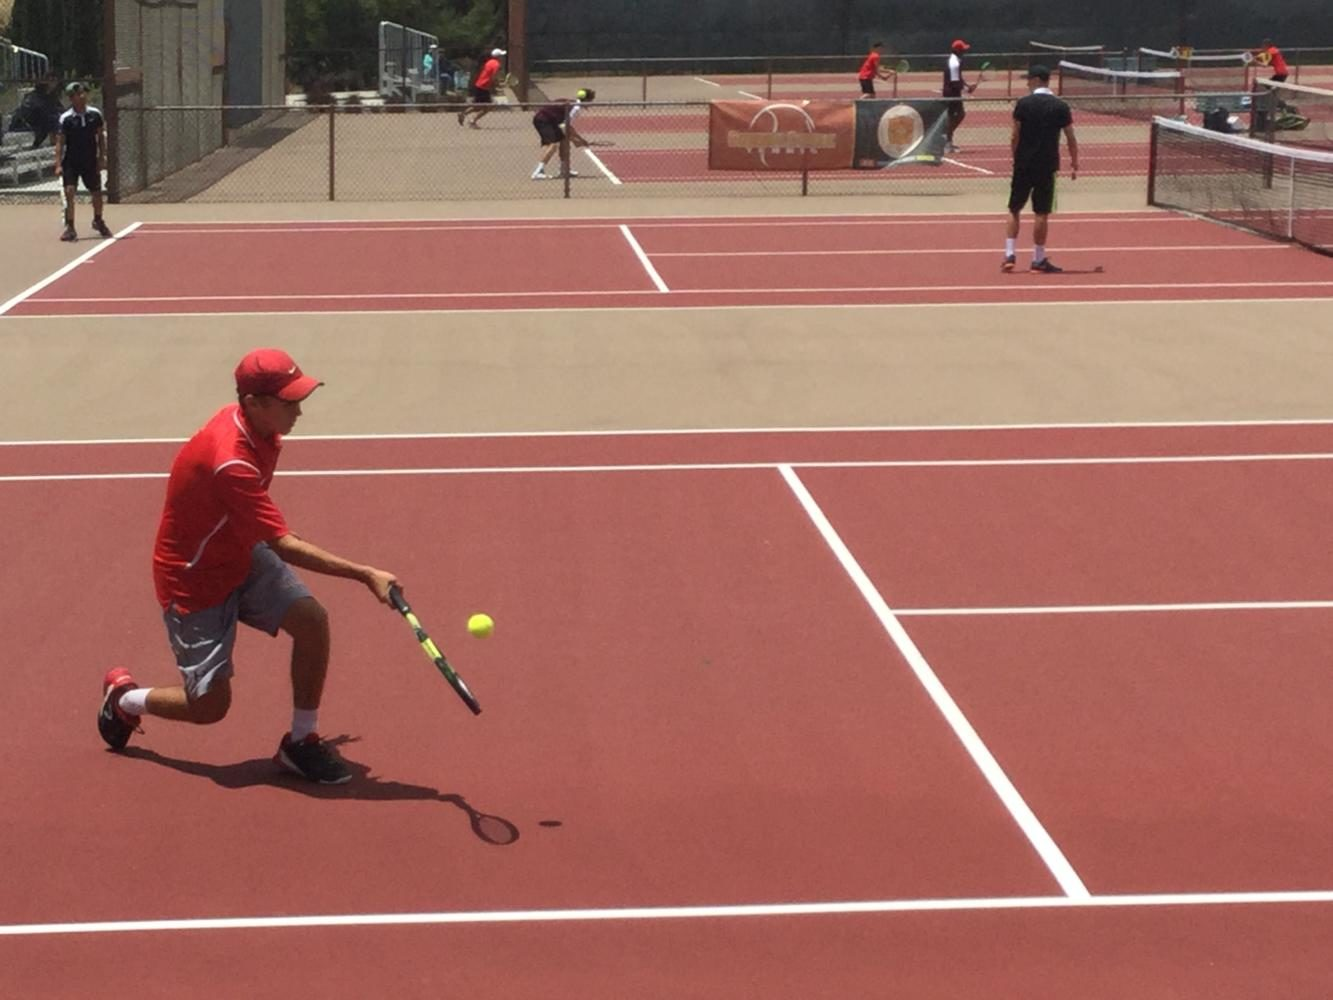 Riley Henderson '17 plays against a top player from La Jolla High School in the back draw to qualify for the 2017 CIF boy's tennis individual championships.